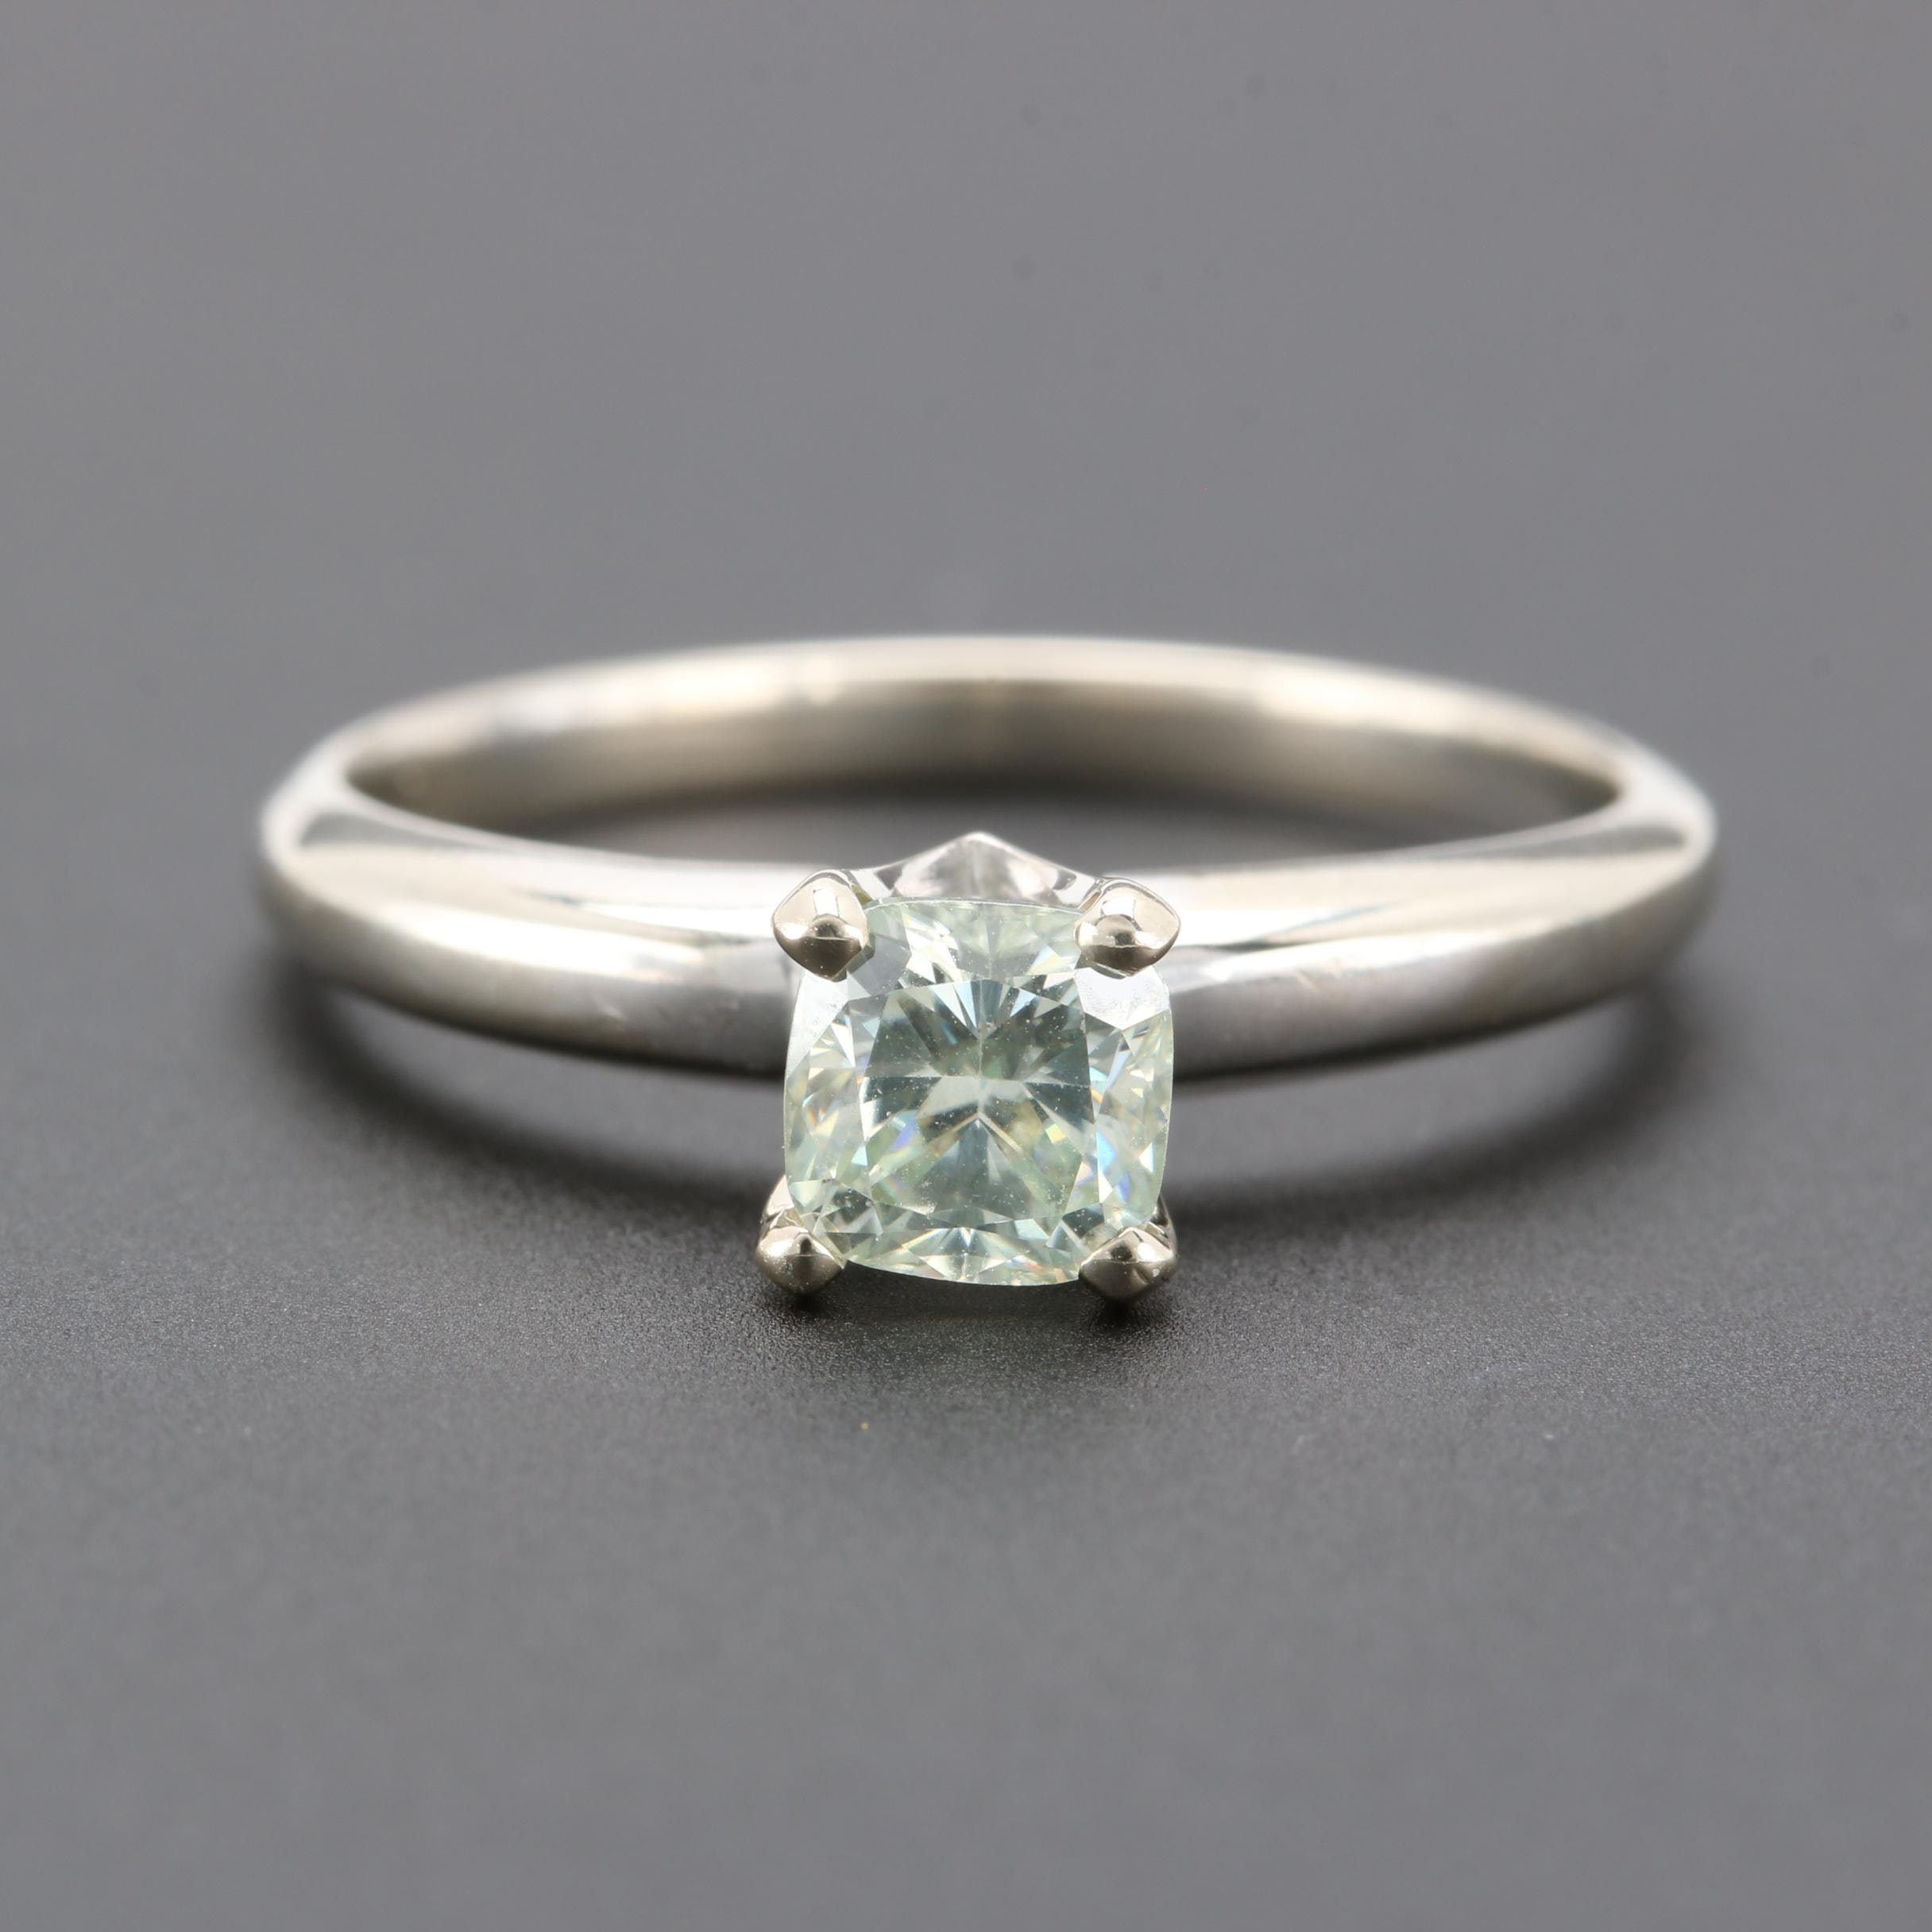 14K White Gold Synthetic Moissanite Solitaire Ring